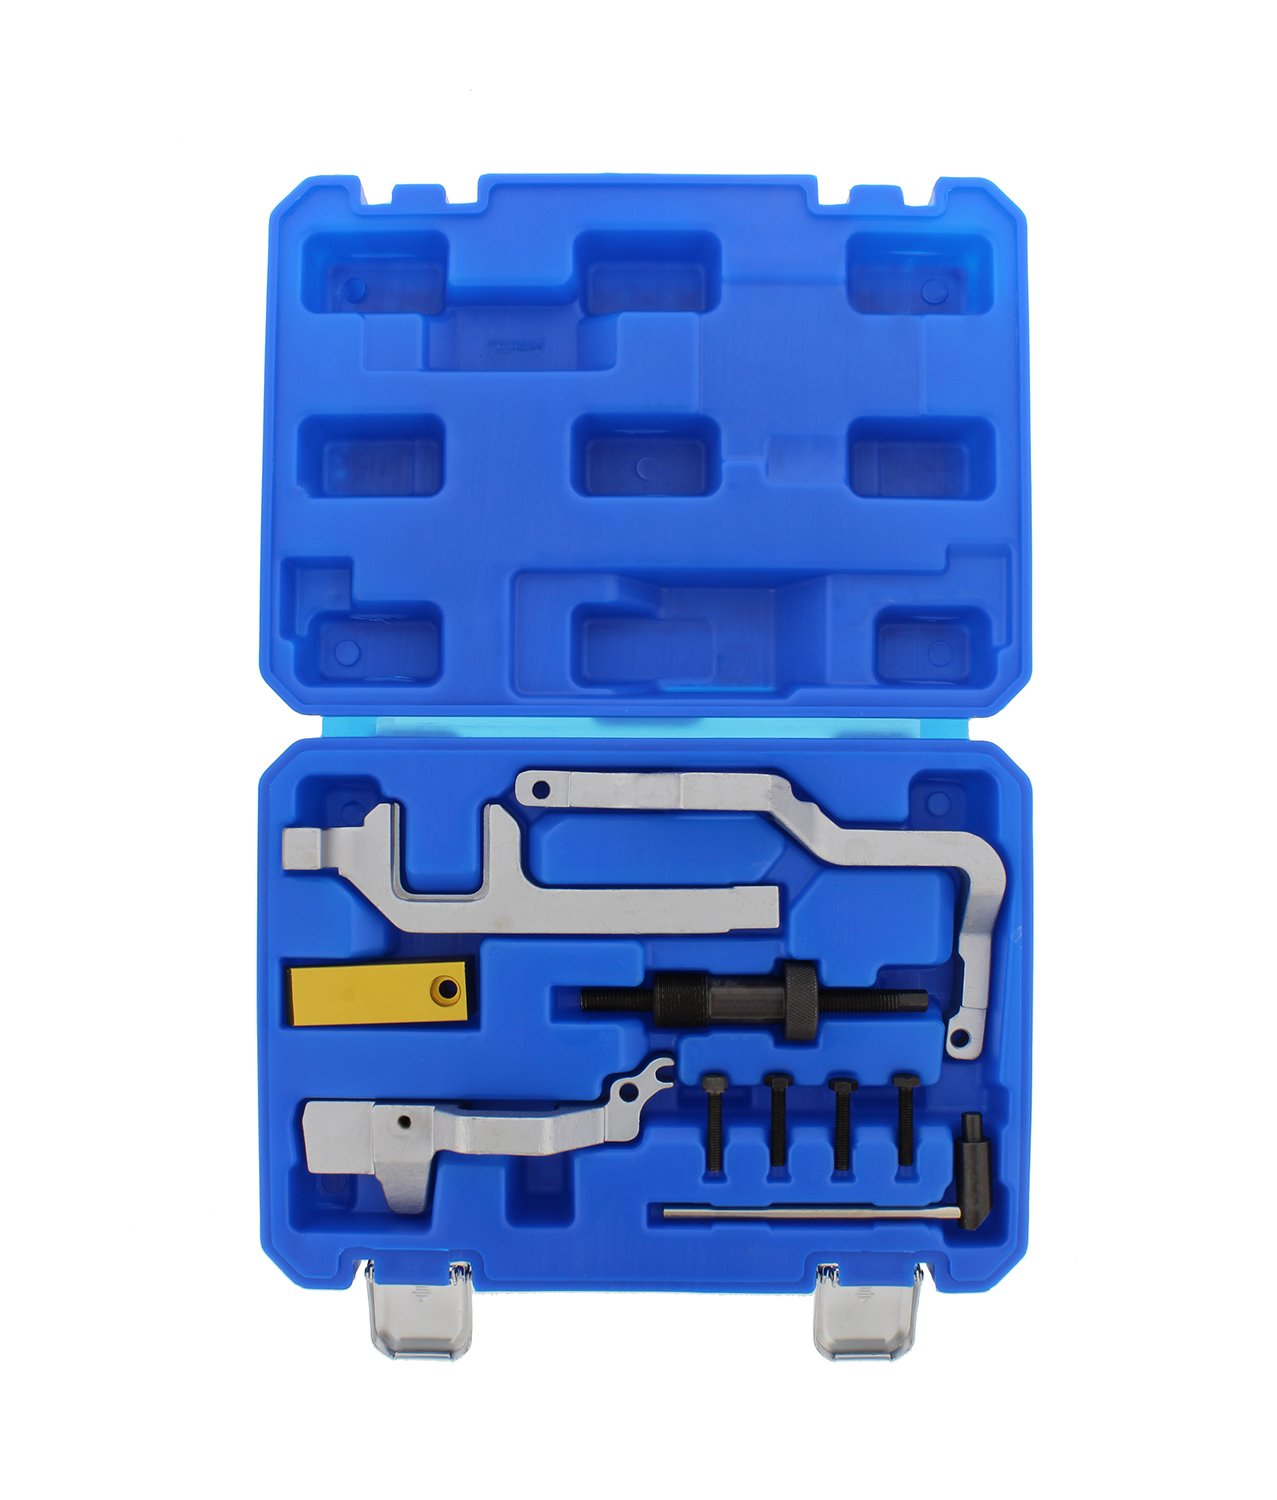 ABN Engine Timing Tool Set for Mini Cooper N12, N14 - BMW, Citroen, Peugeot by ABN (Image #1)